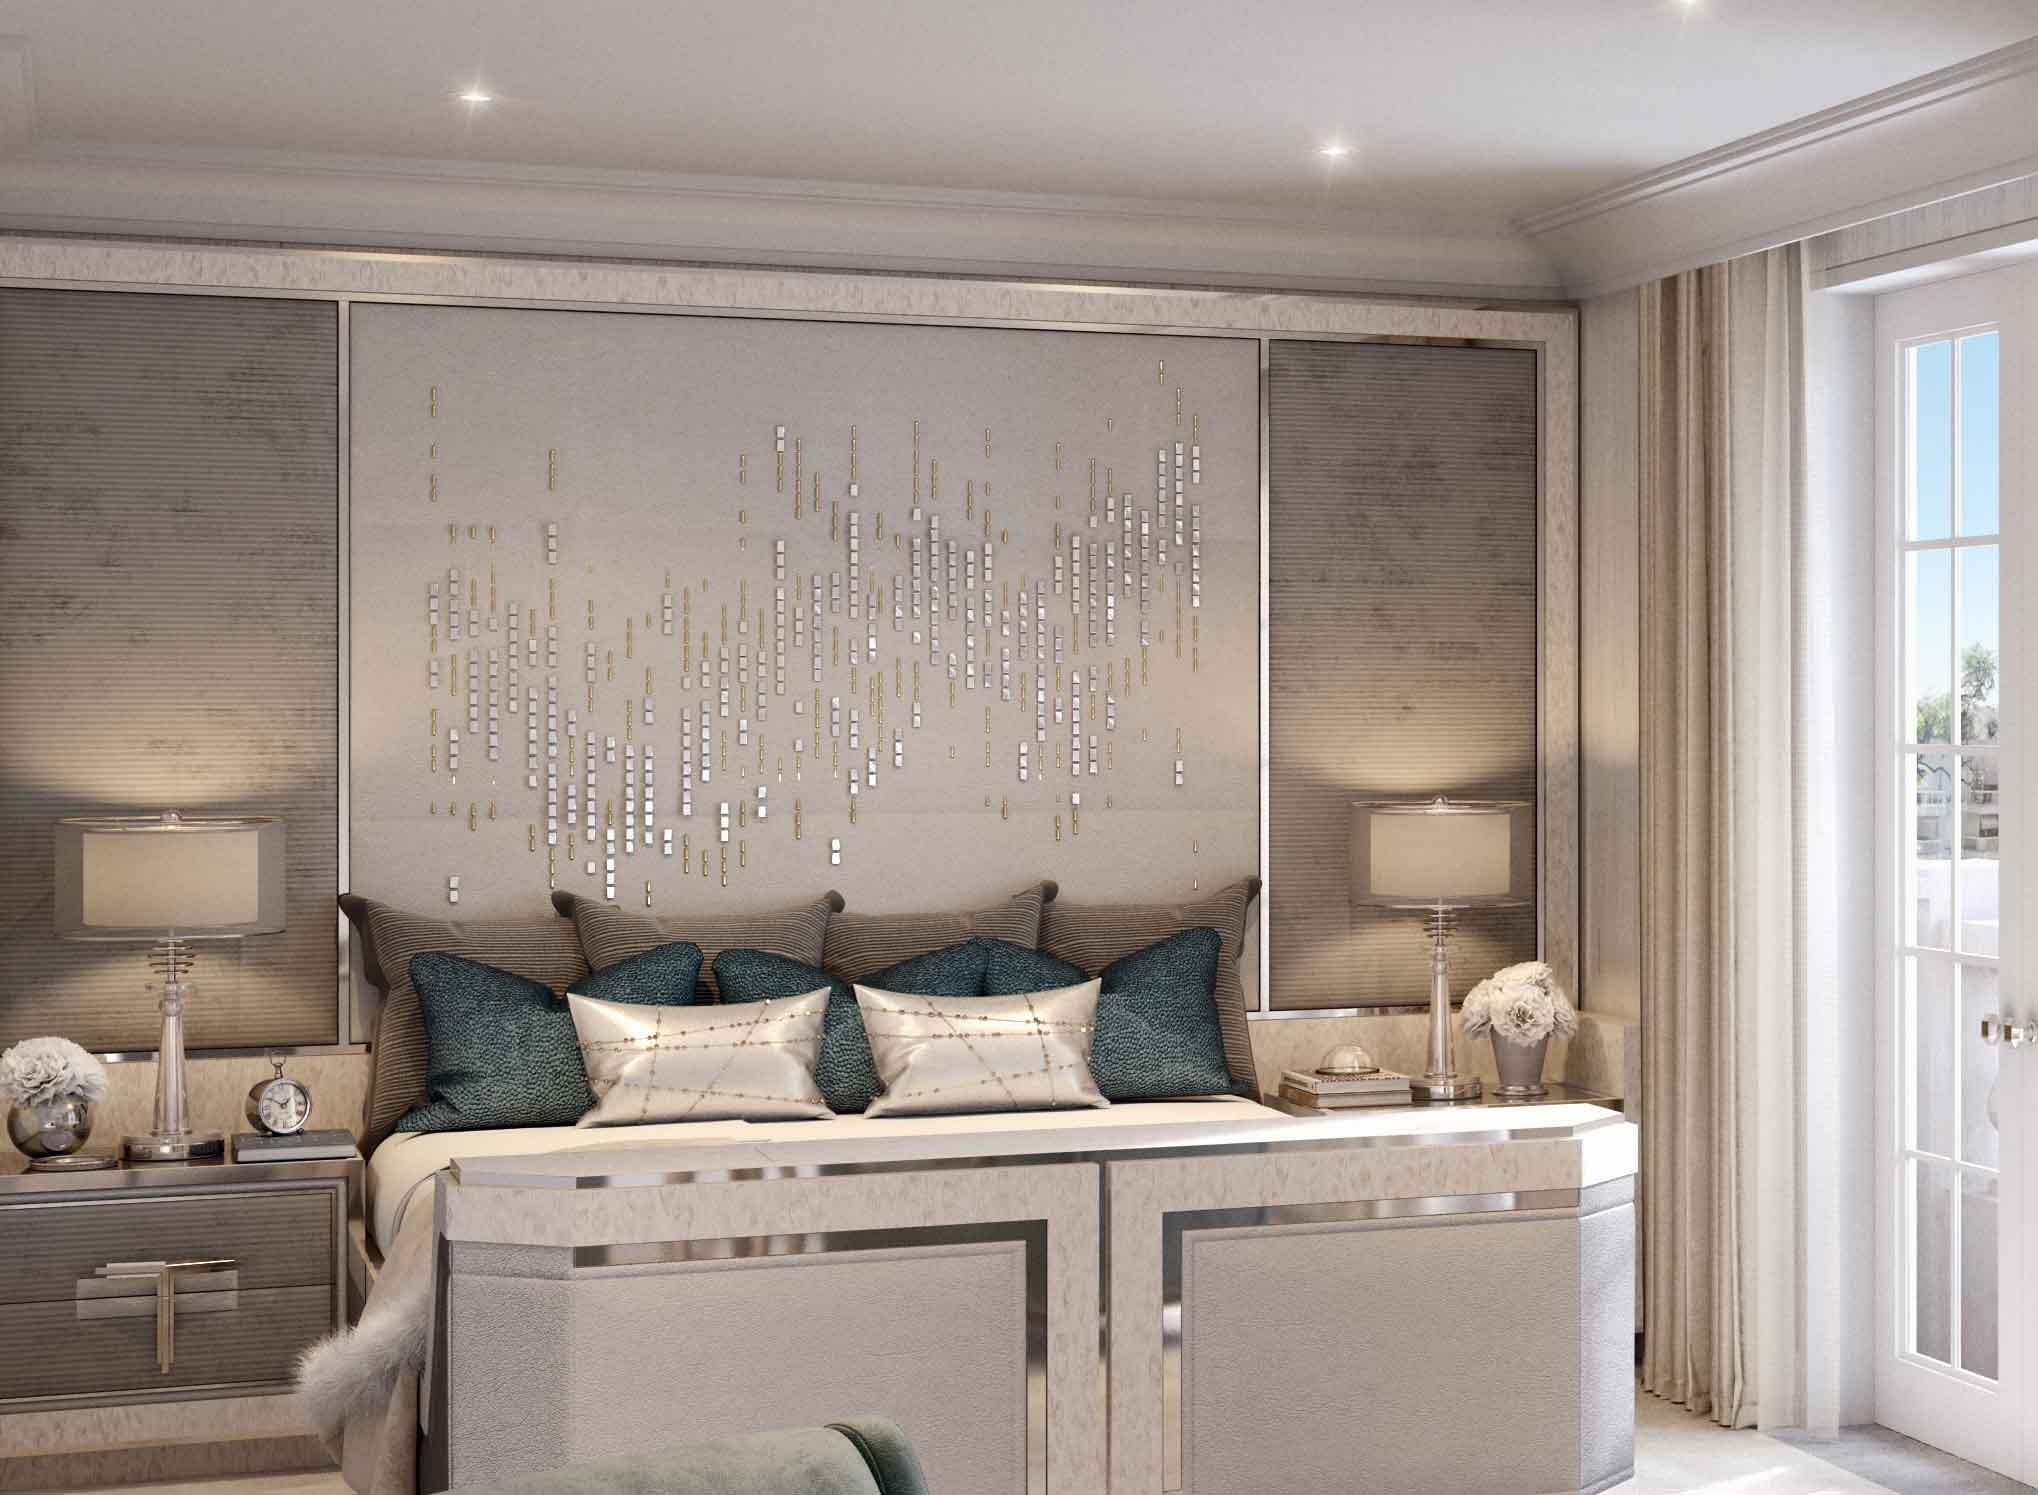 Know More About New The Interior Design Styles At Covethouse